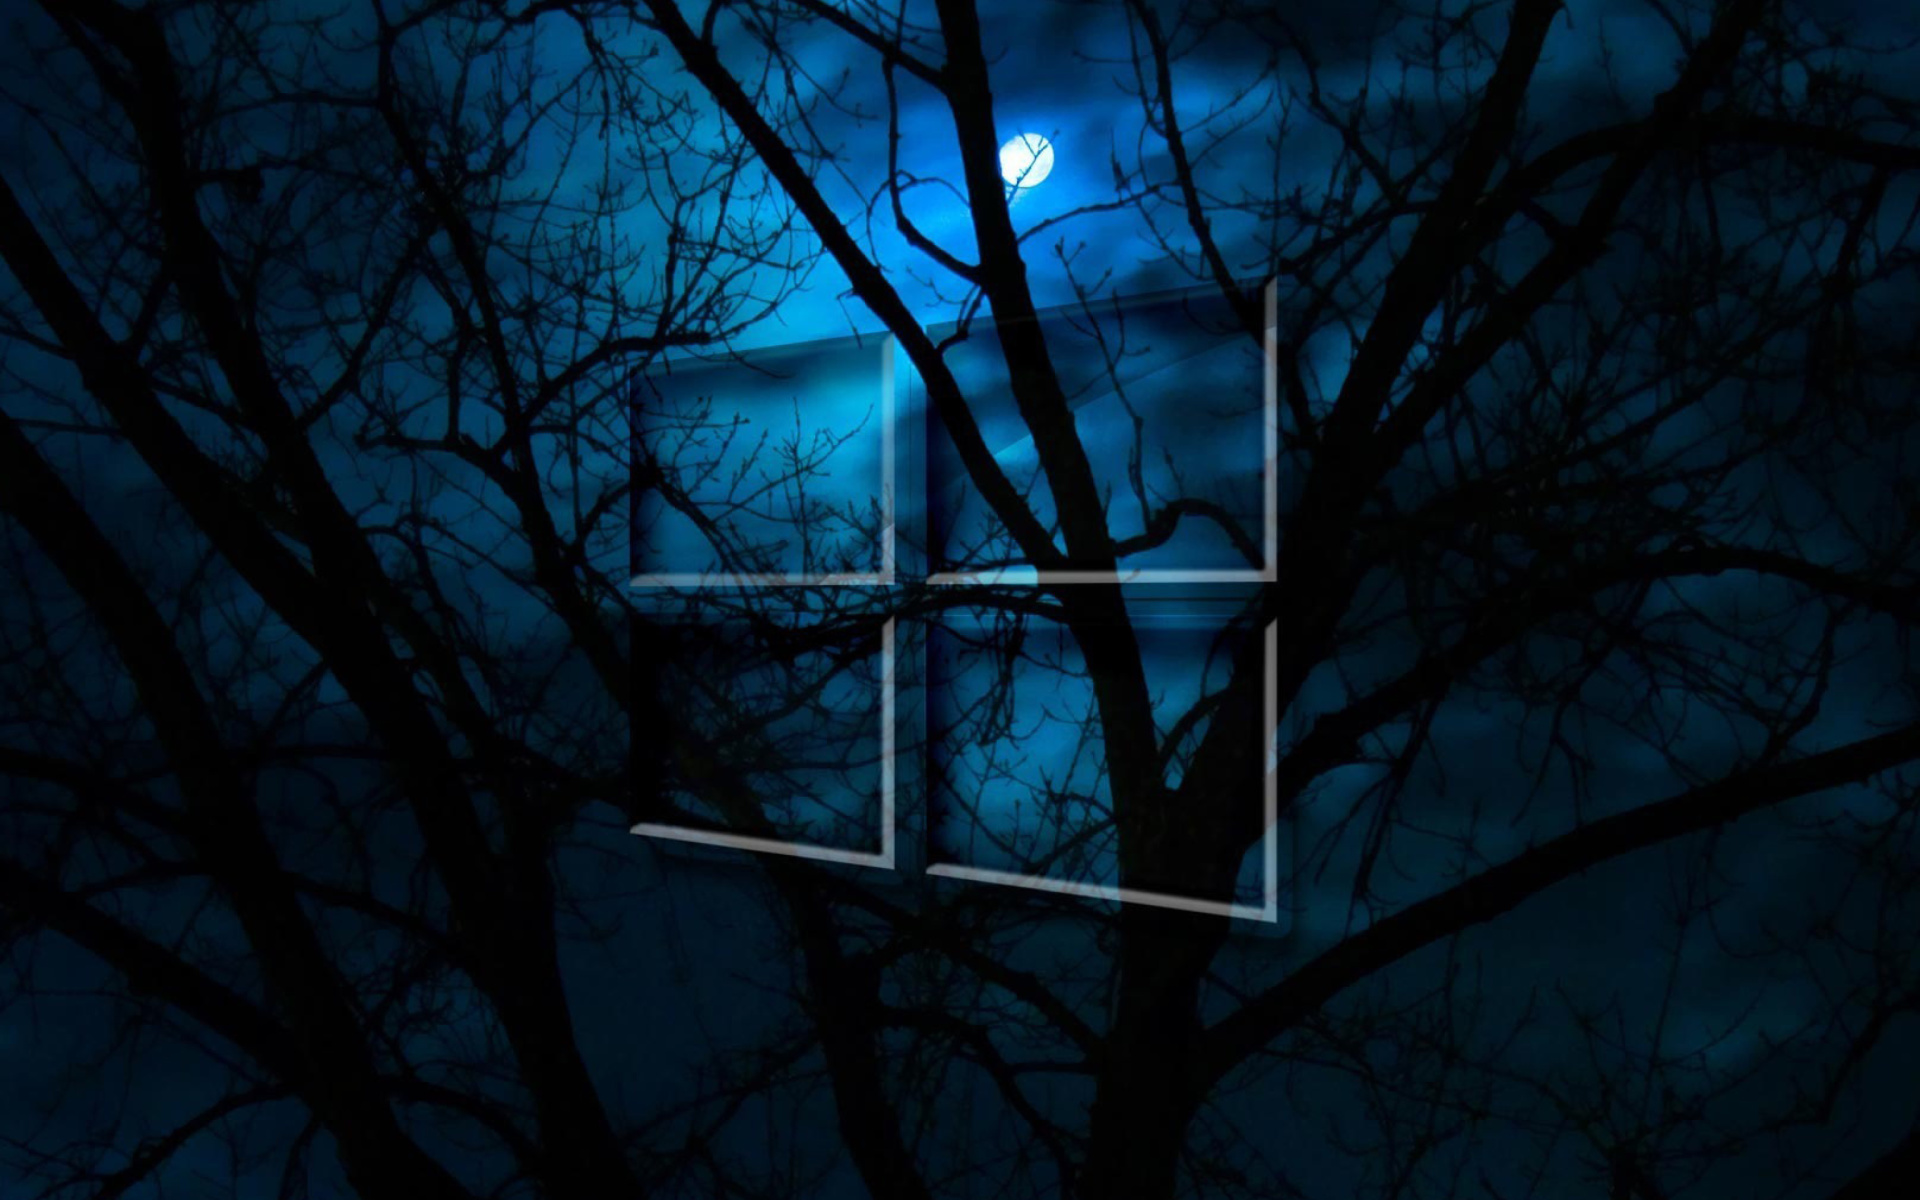 Windows 10 hd moon night fondos de pantalla gratis para - Fondos de escritorio hd para windows ...